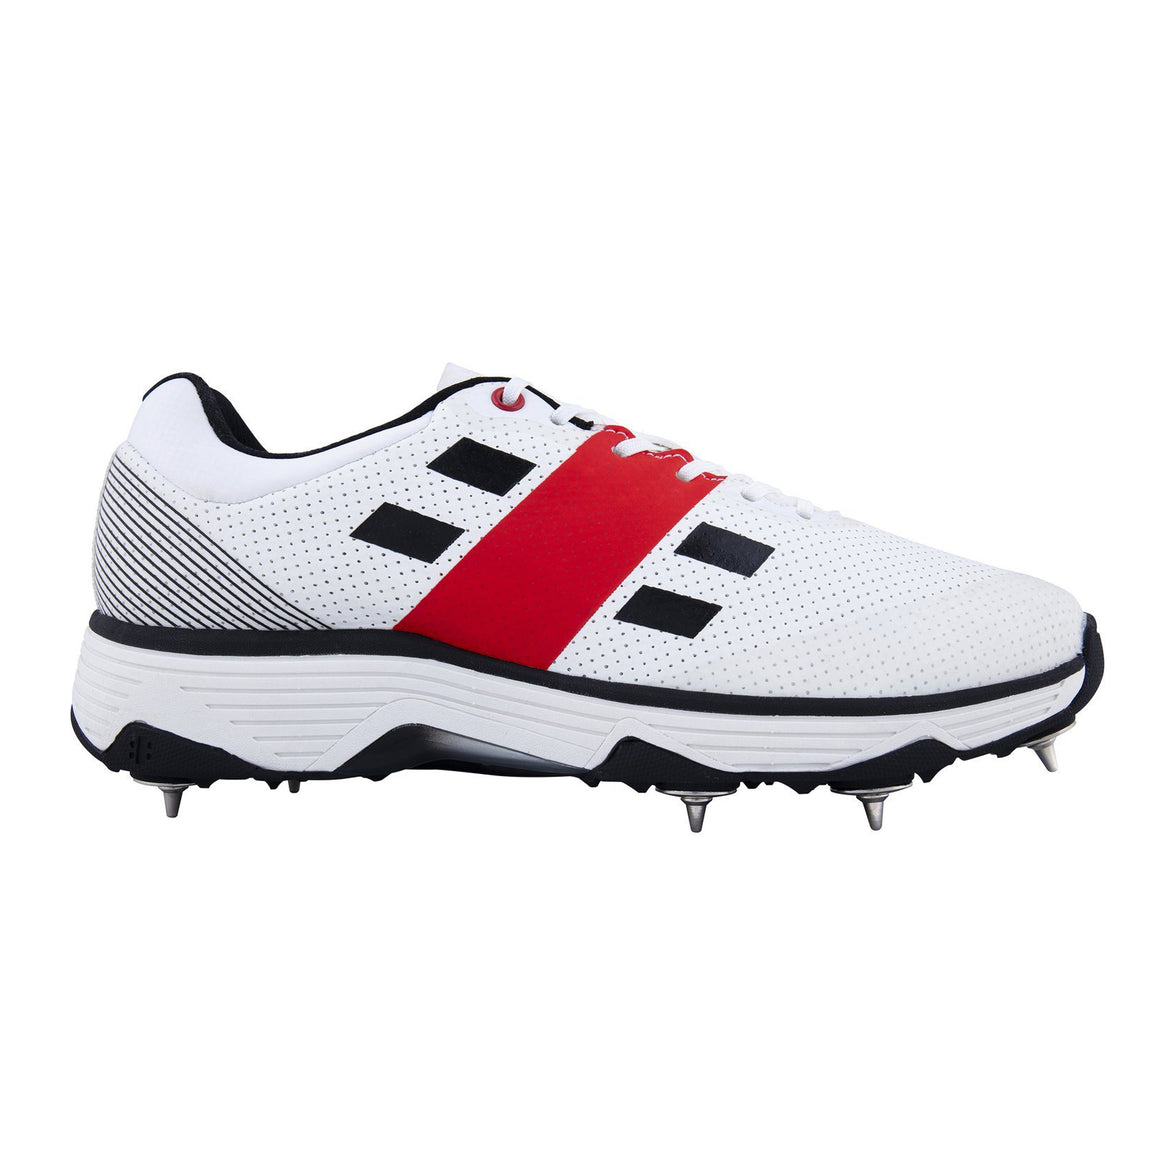 Players Spike Cricket Shoes for Men in White & Black